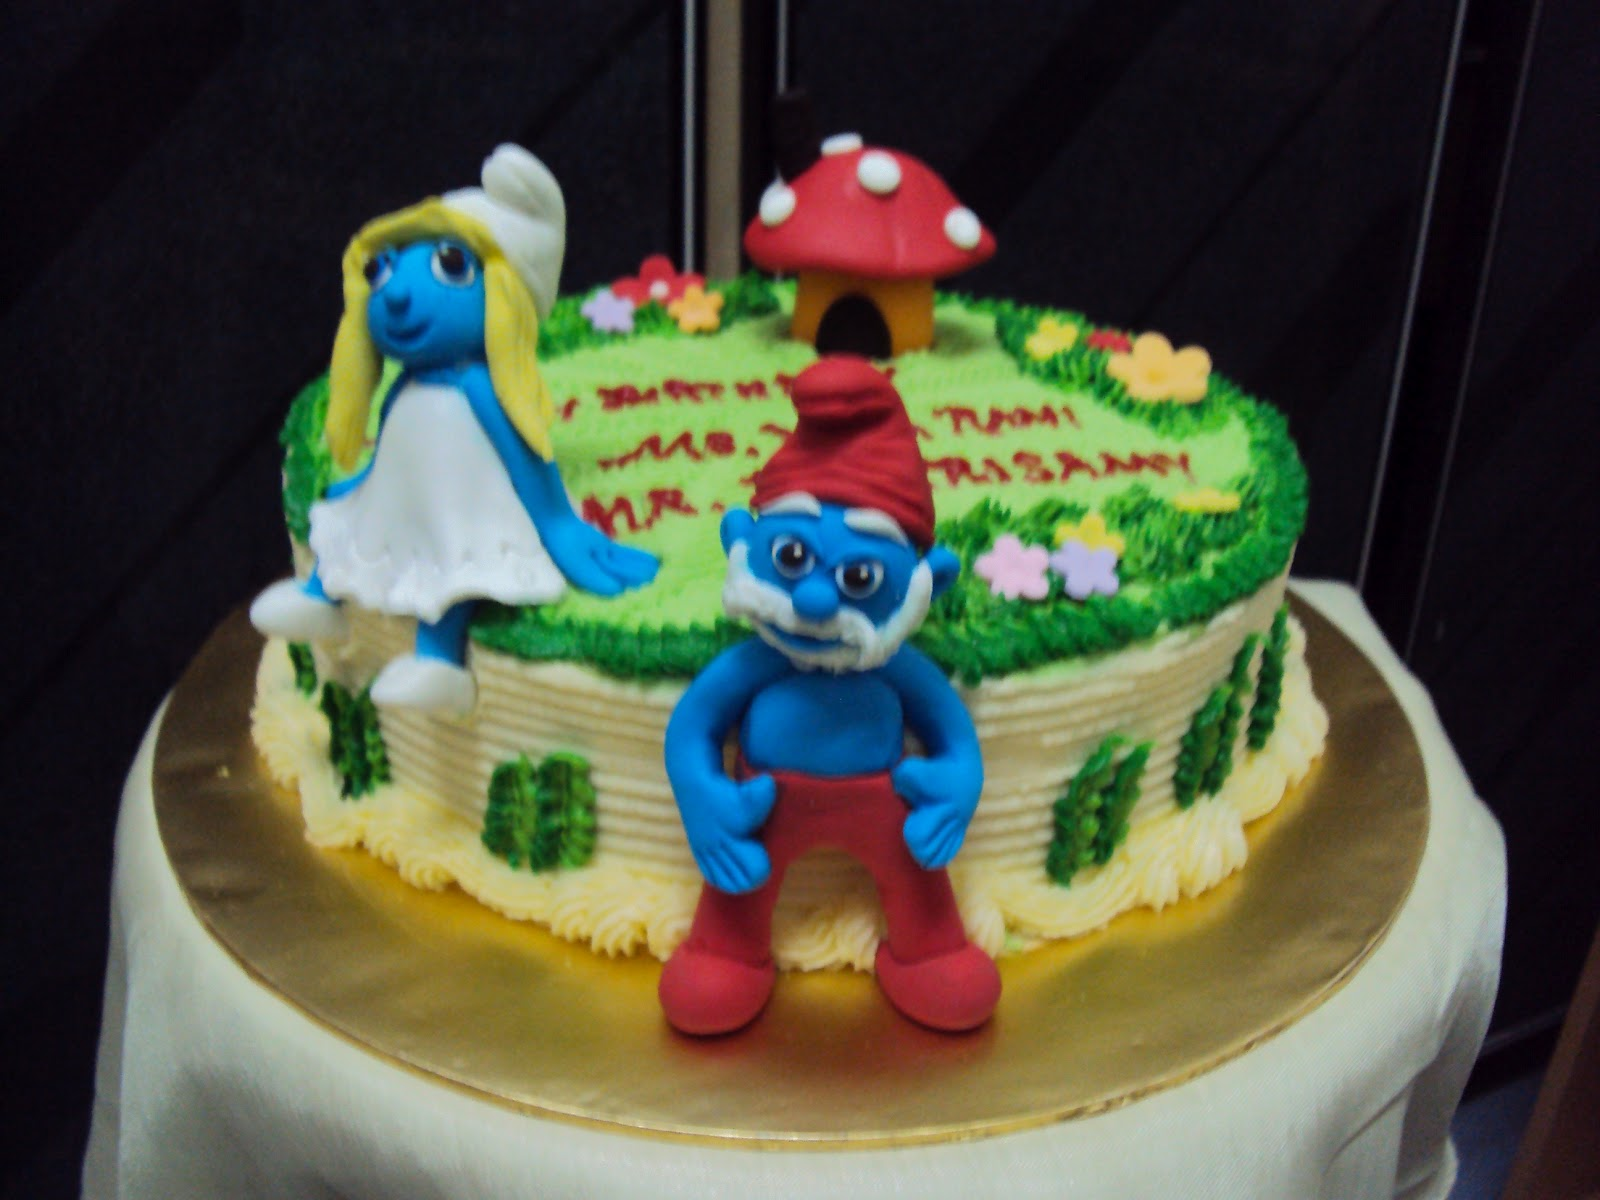 Lmis Cakes Cupcakes Ipoh Contact 012 5991233 3d Smurf Cake